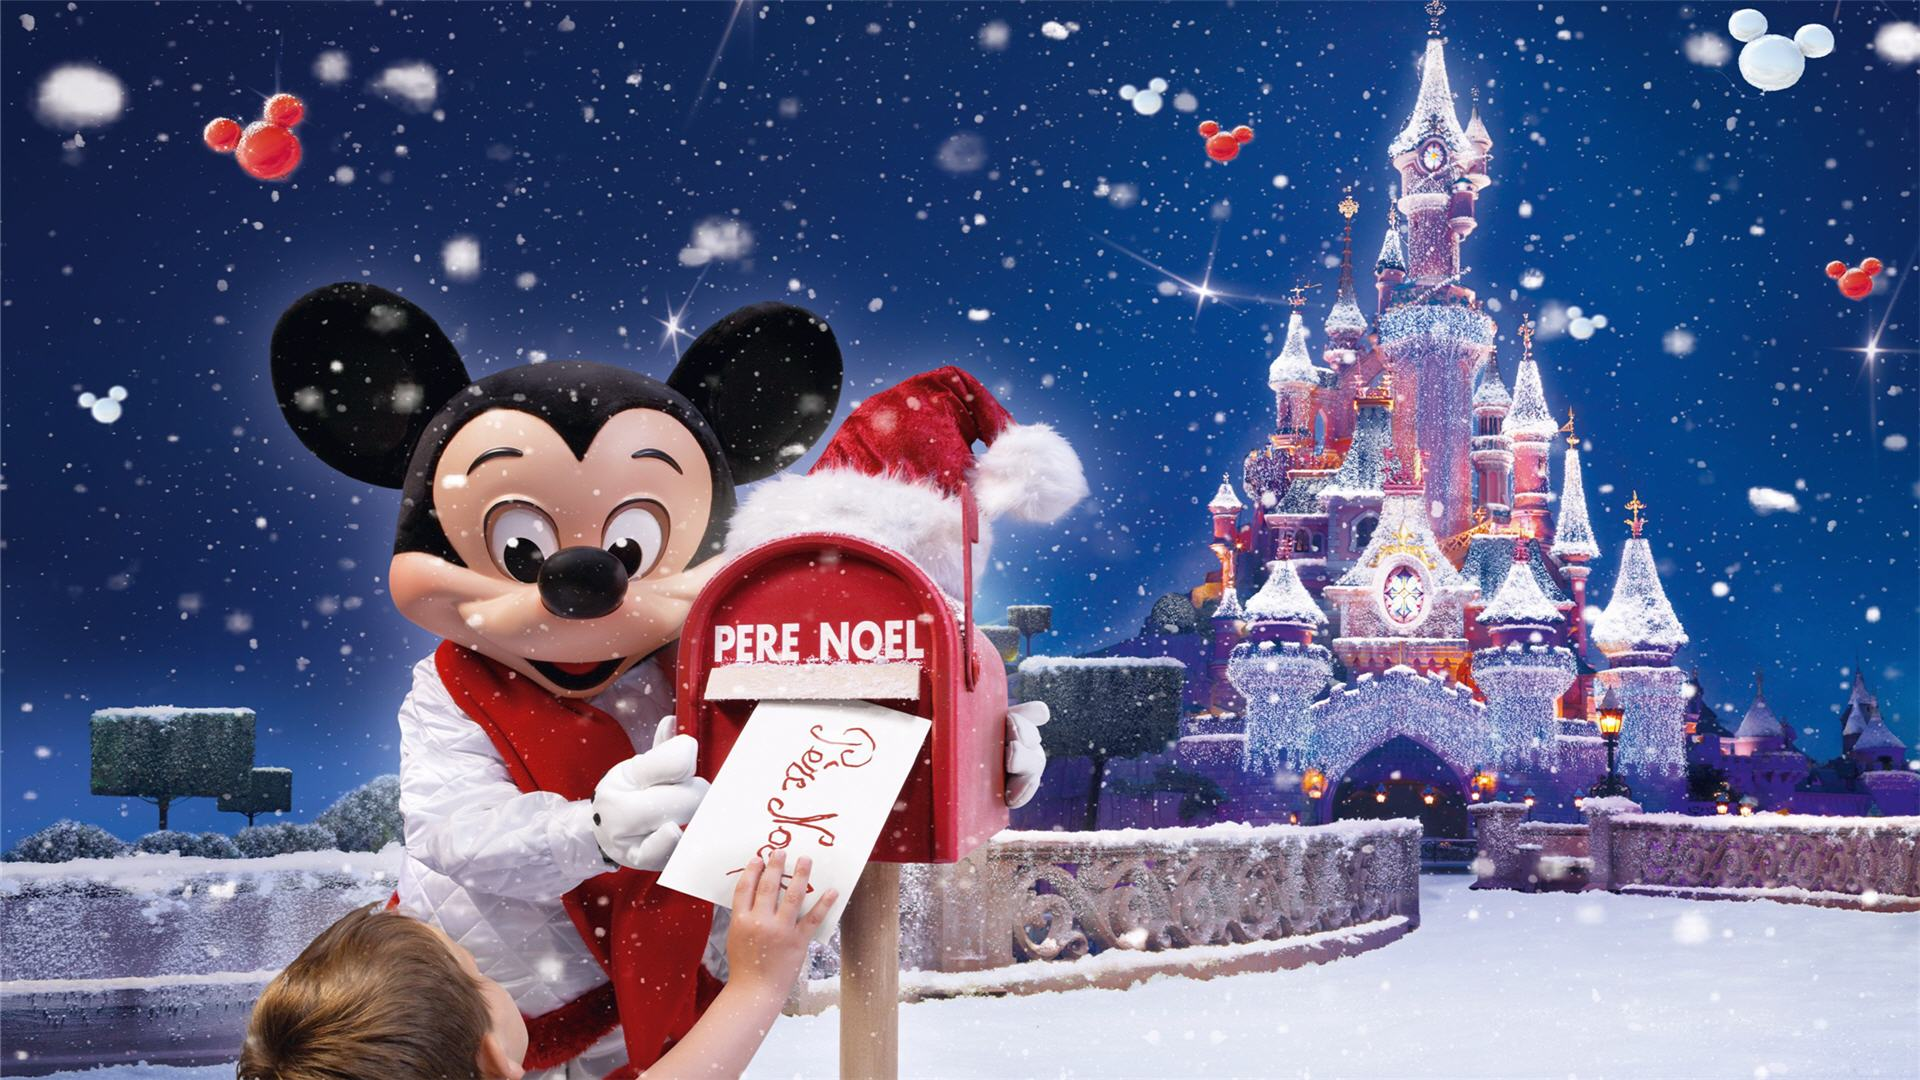 Disney Christmas Wallpapers - WallpaperSafari